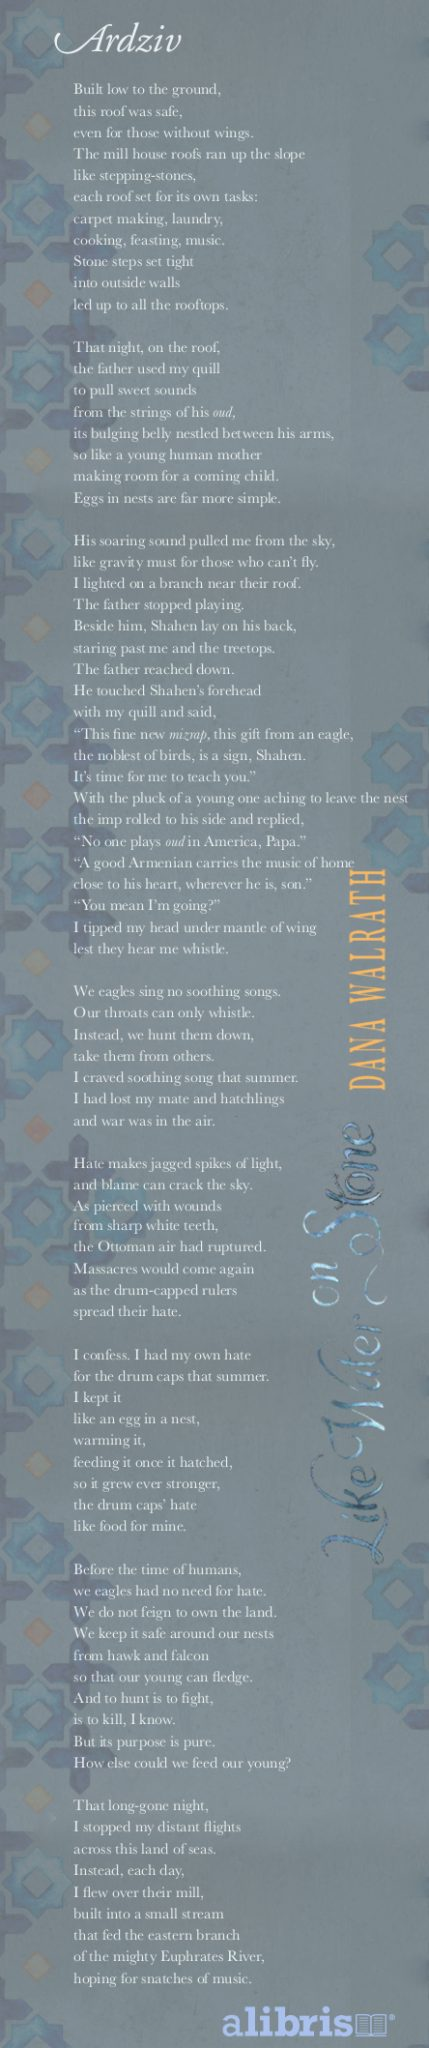 The poem Ardziv from Like Water on Stone, a book about the Armenian genocide